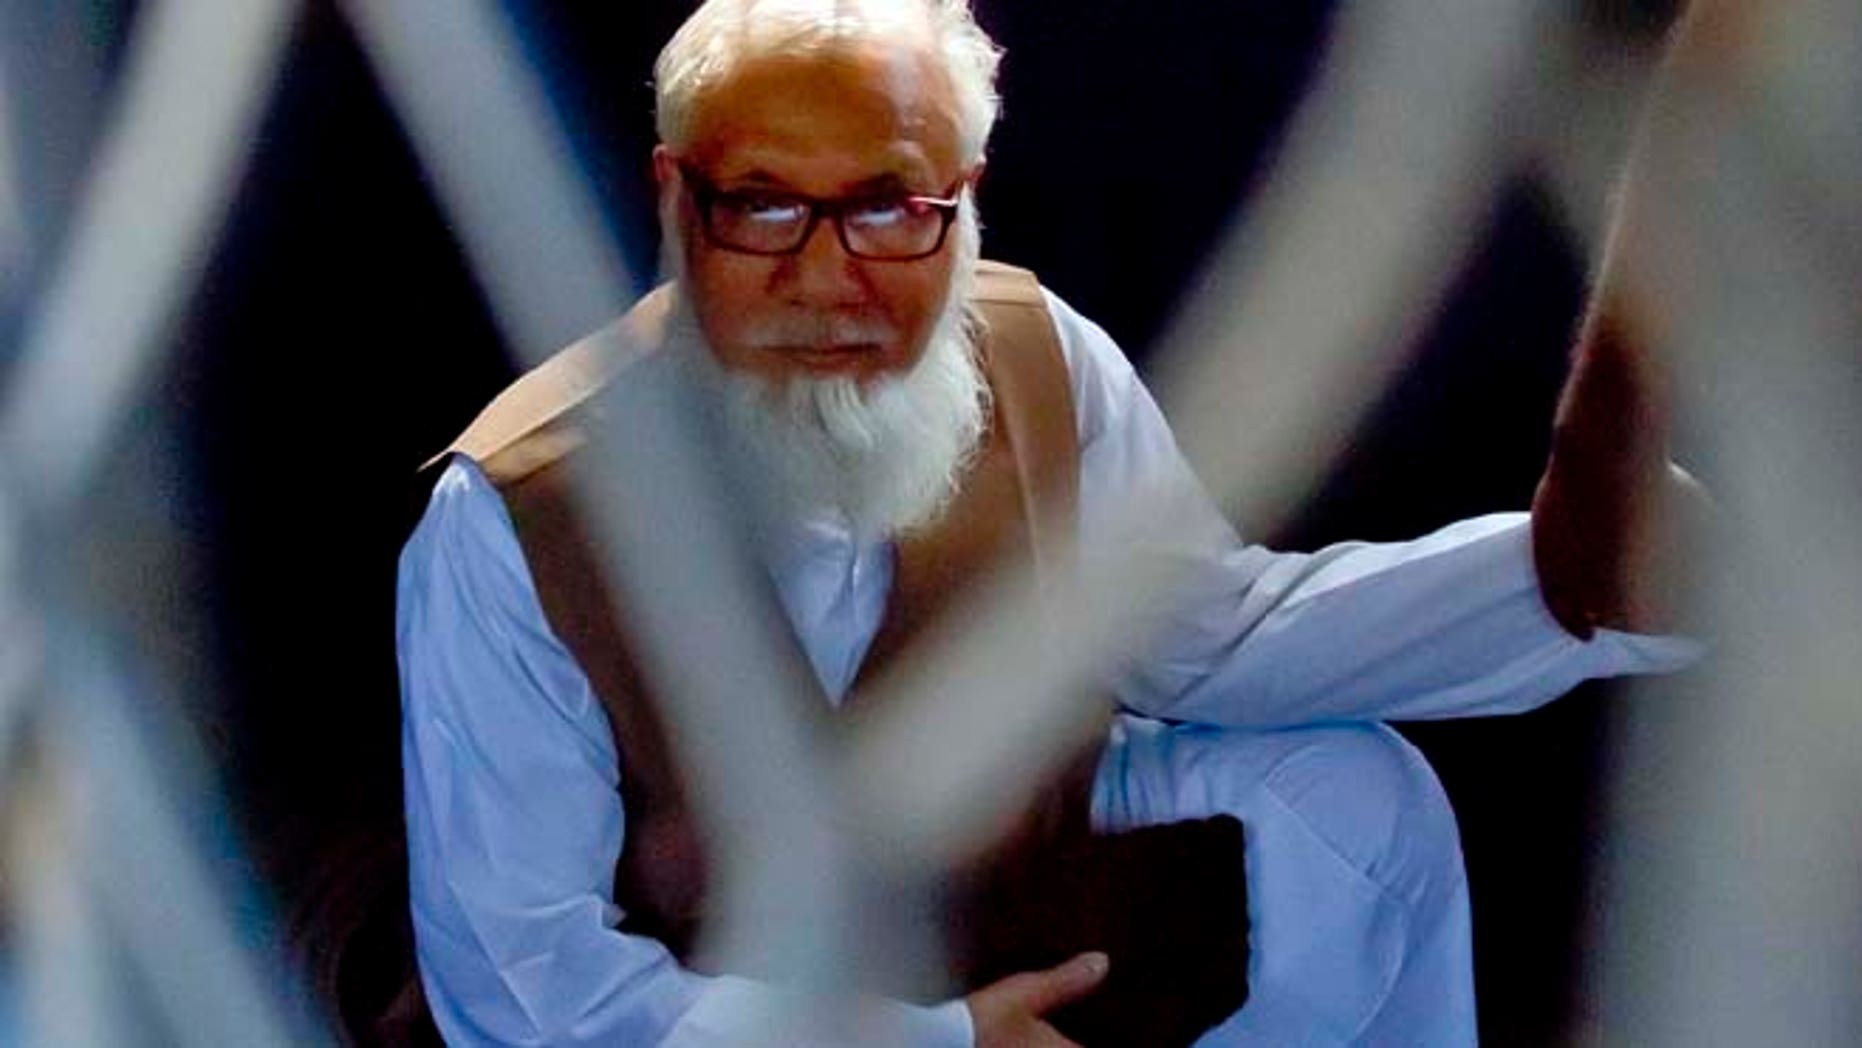 Oct. 29, 2014: Jamaat-e-Islami chief Motiur Rahman Nizami sits inside a police van after he was sentenced to death for his role in the deaths of thousands of people during the nation's independence war against Pakistan in 1971, in Dhaka, Bangladesh. (AP)